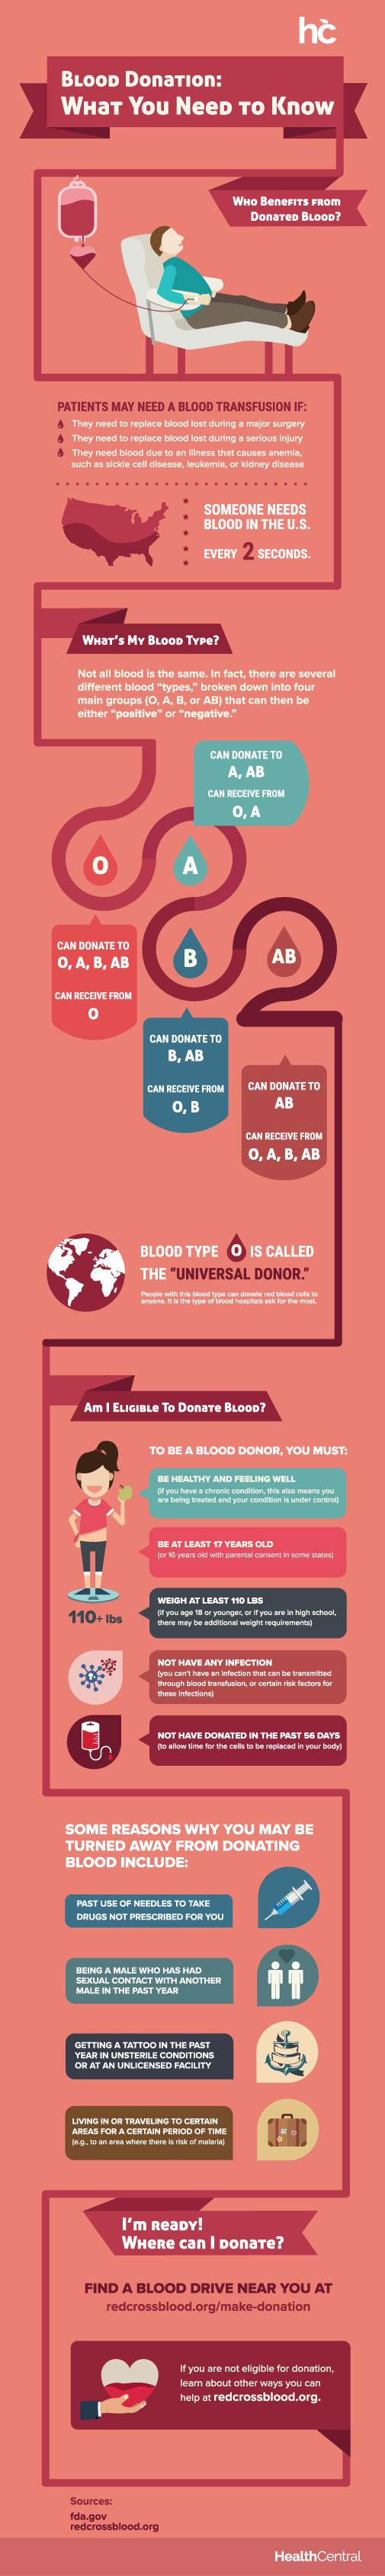 Learn more about the basics of blood donation, including information about blood types and donor eligibility criteria. @American Red Cross #BloodDonorMonth! rmdy.hm/FqGlfm1